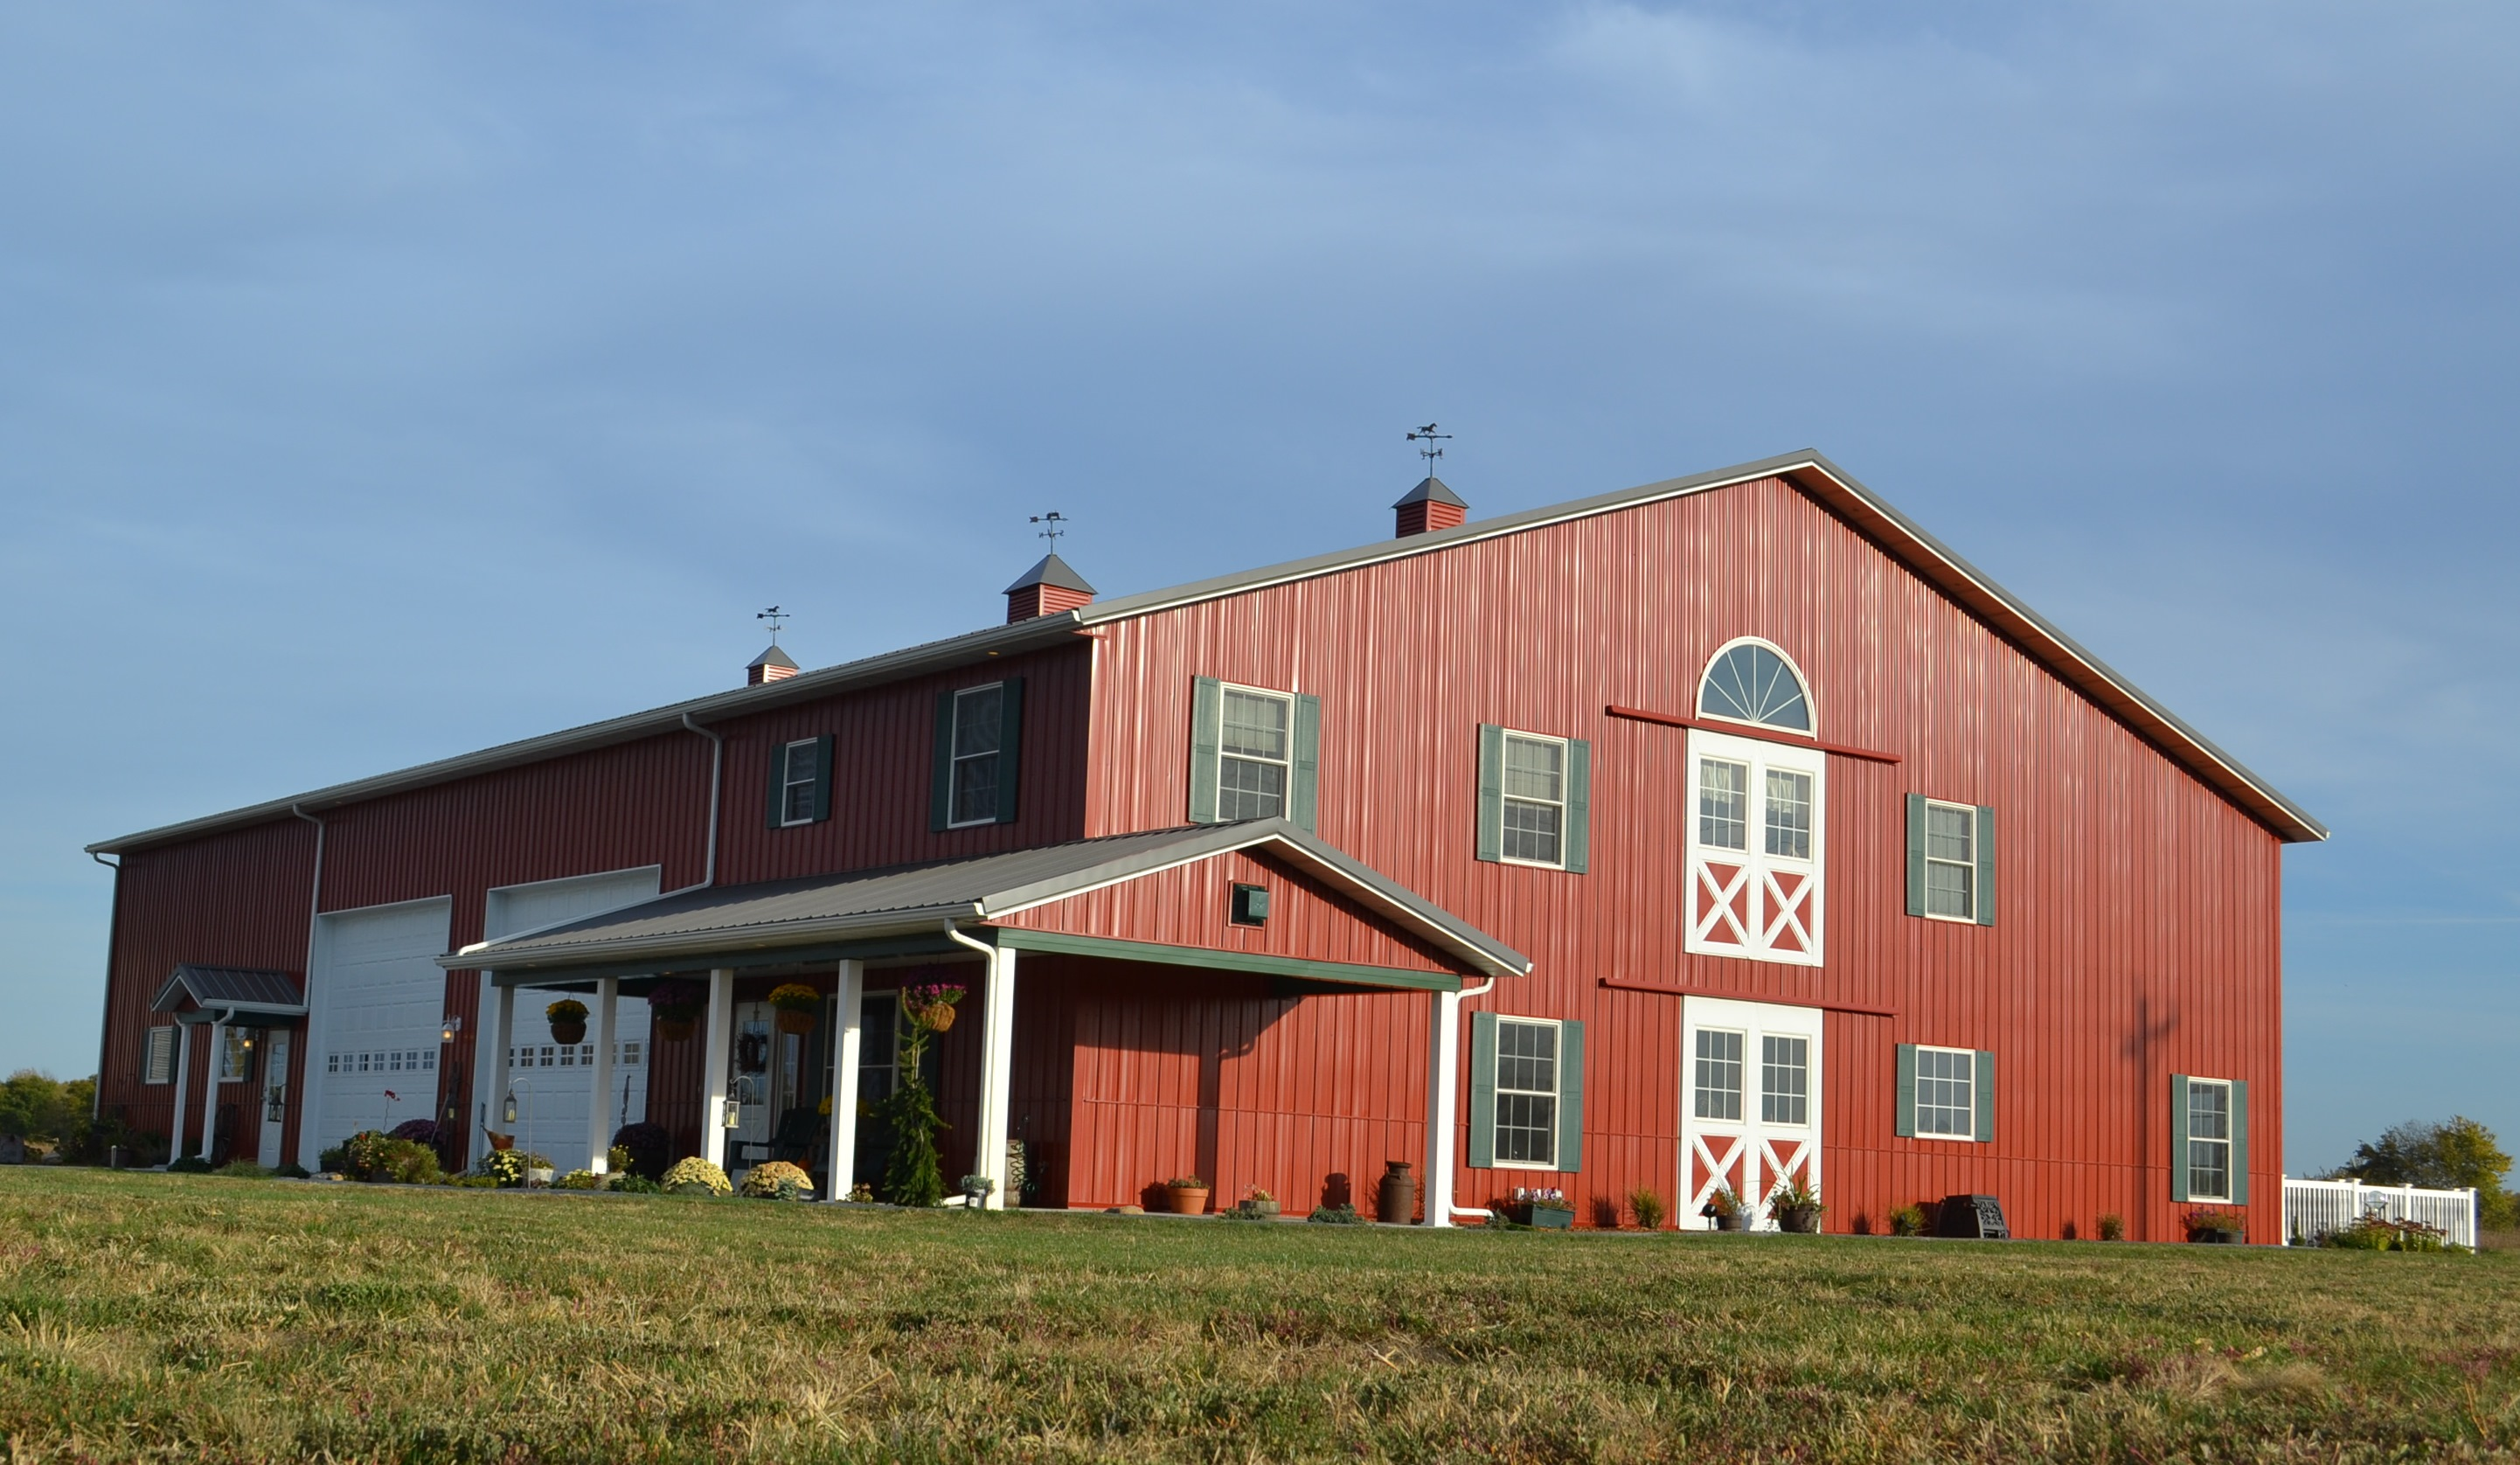 ... Light Adds Fun Element to New Barn Home | Blog | BarnLightElectric.com